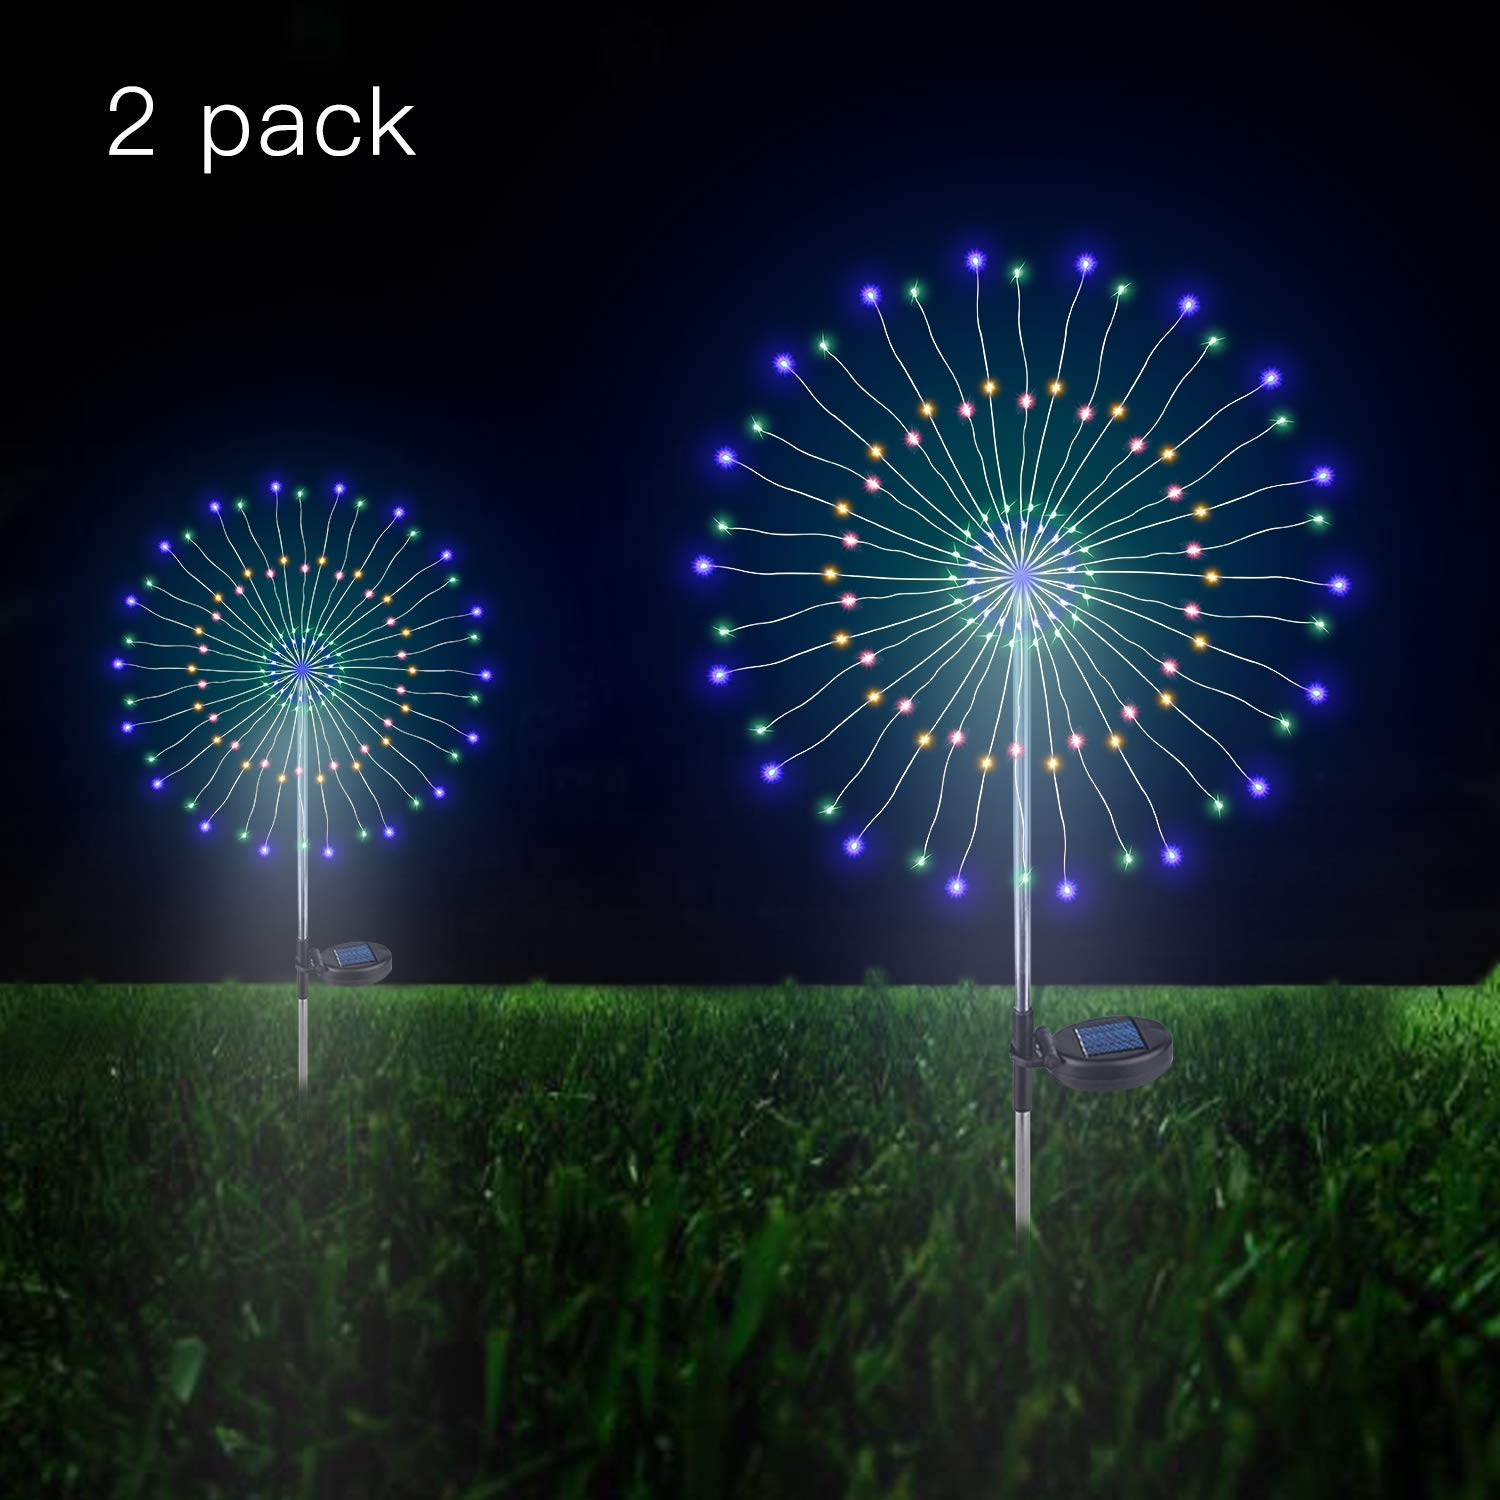 Outdoor Solar Garden Decorative Lights- 105 LED Powered 35 Copper Wires String Landscape Light-DIY Flowers Fireworks Trees for Walkway Patio Lawn Backyard,Party Decor 2 Pack (Multi -Color)